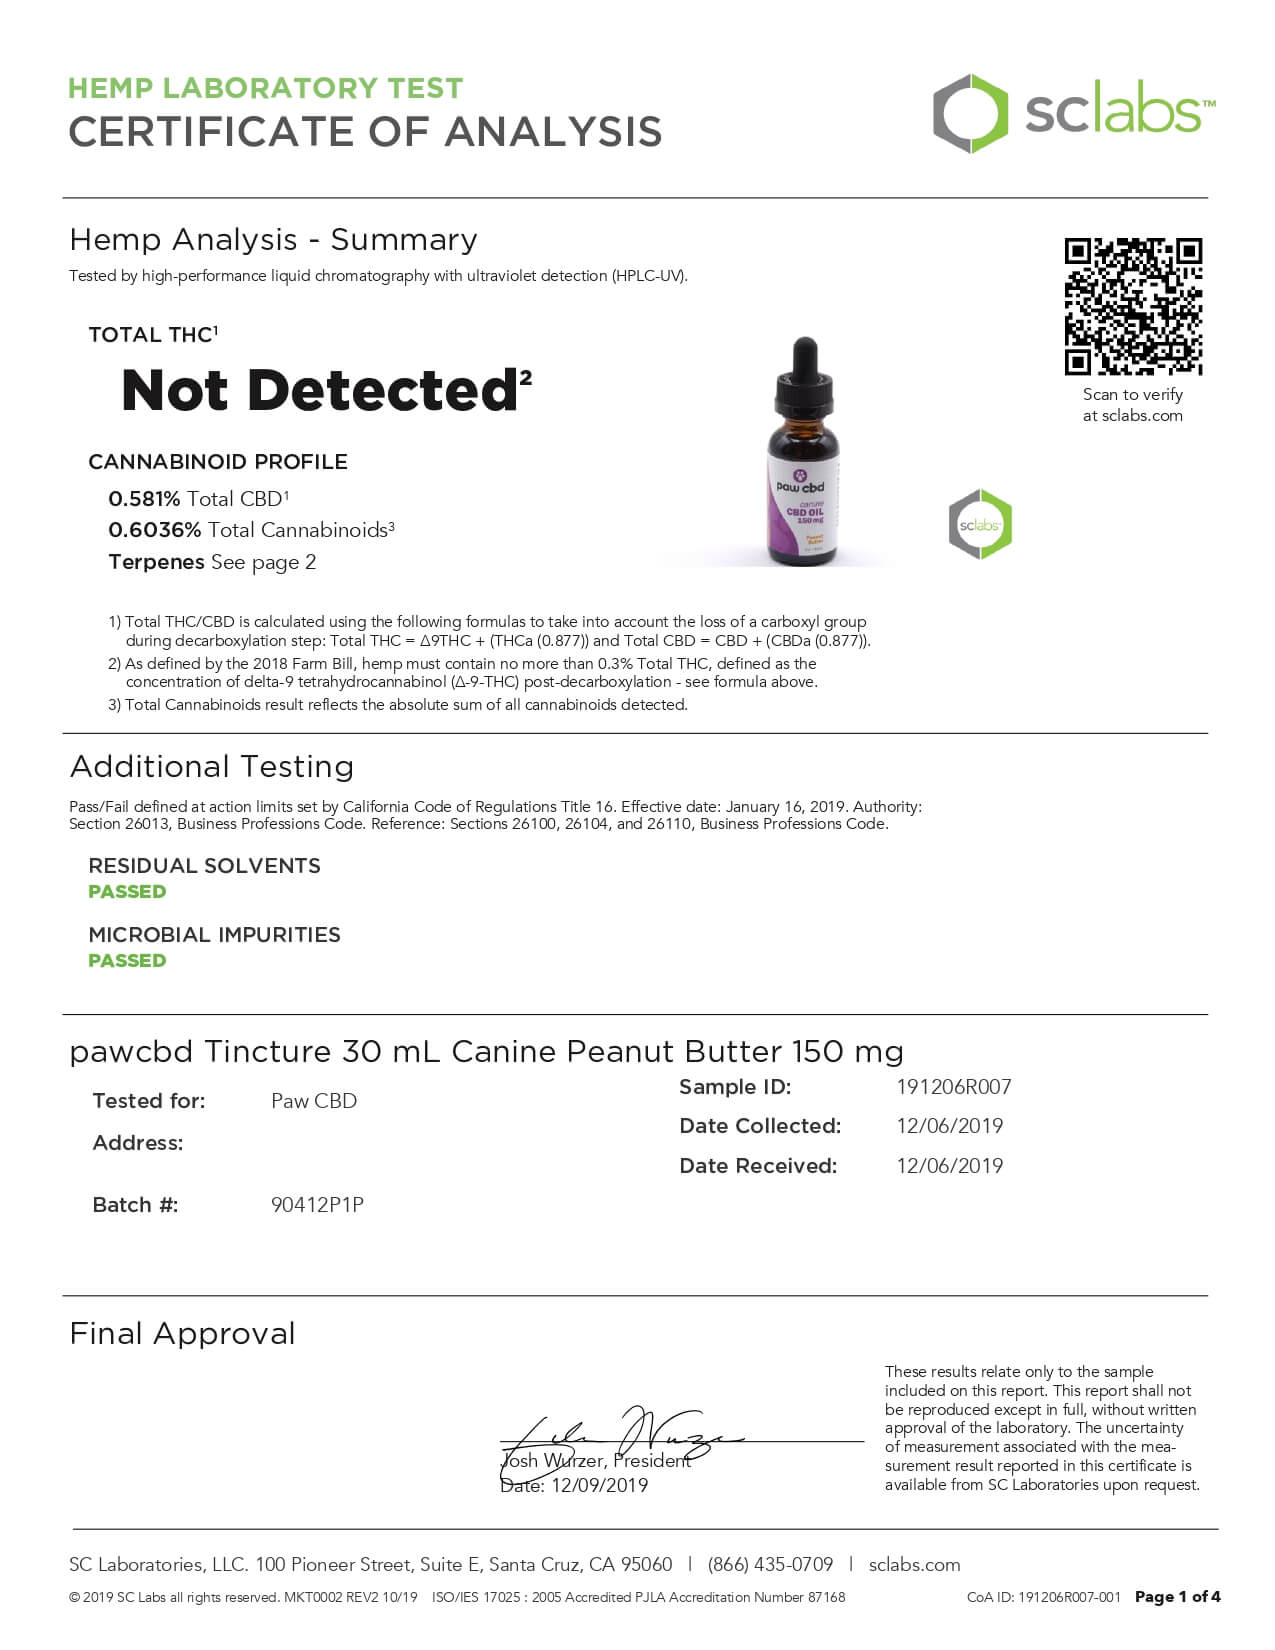 cbdMD CBD Pet Tincture Peanut Butter Flavored for Canines 150mg Lab Report